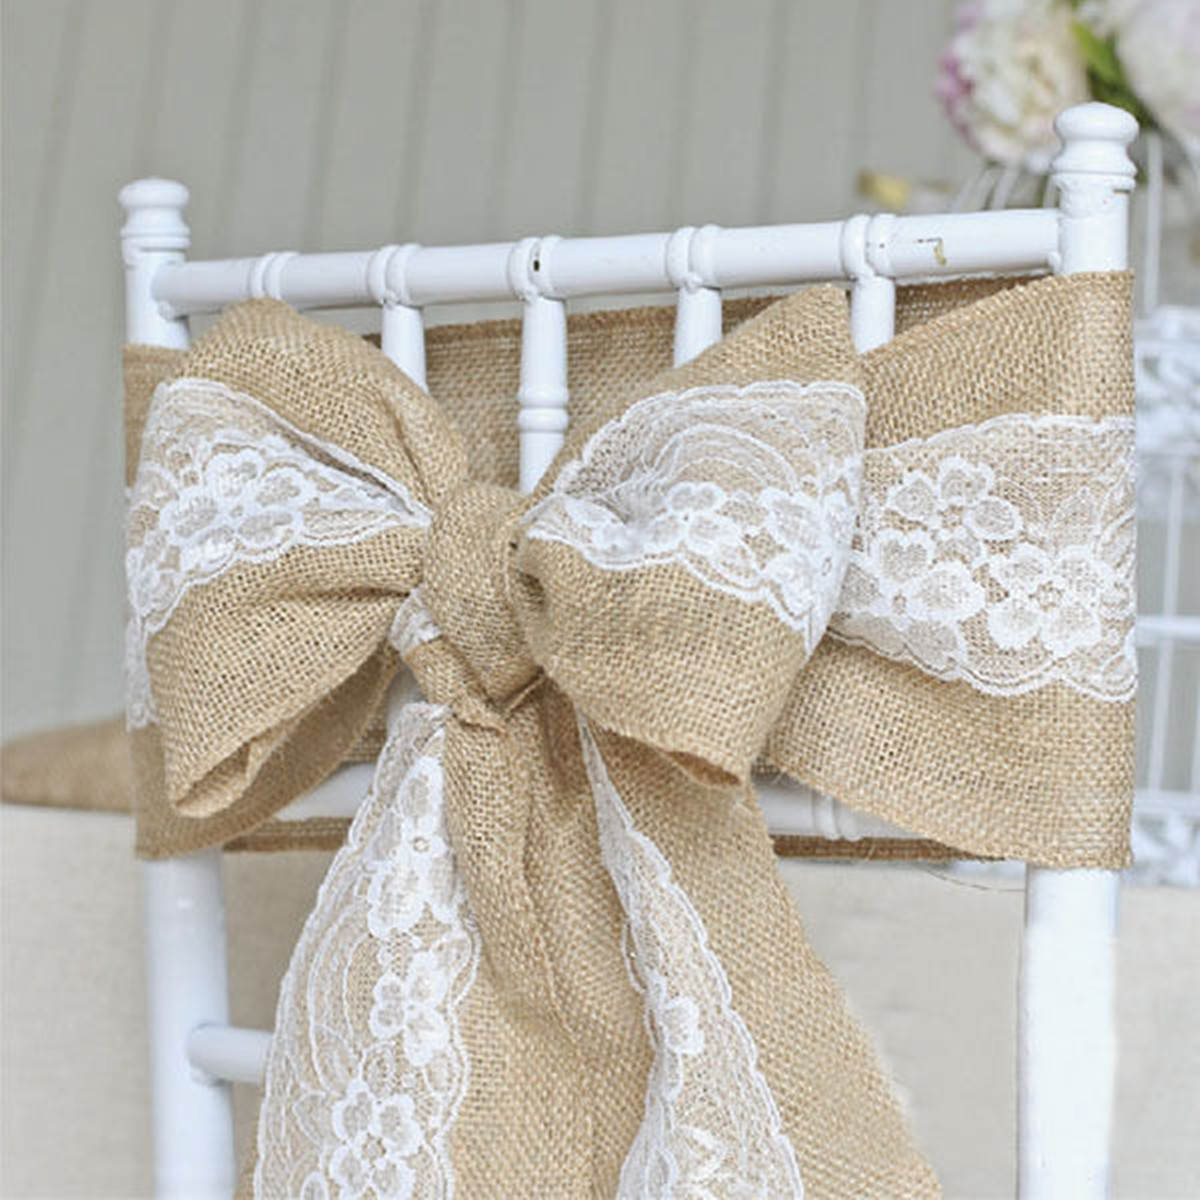 burlap chair covers for folding chairs high back accent 15 x 240cm vintage hessian jute lace sashes